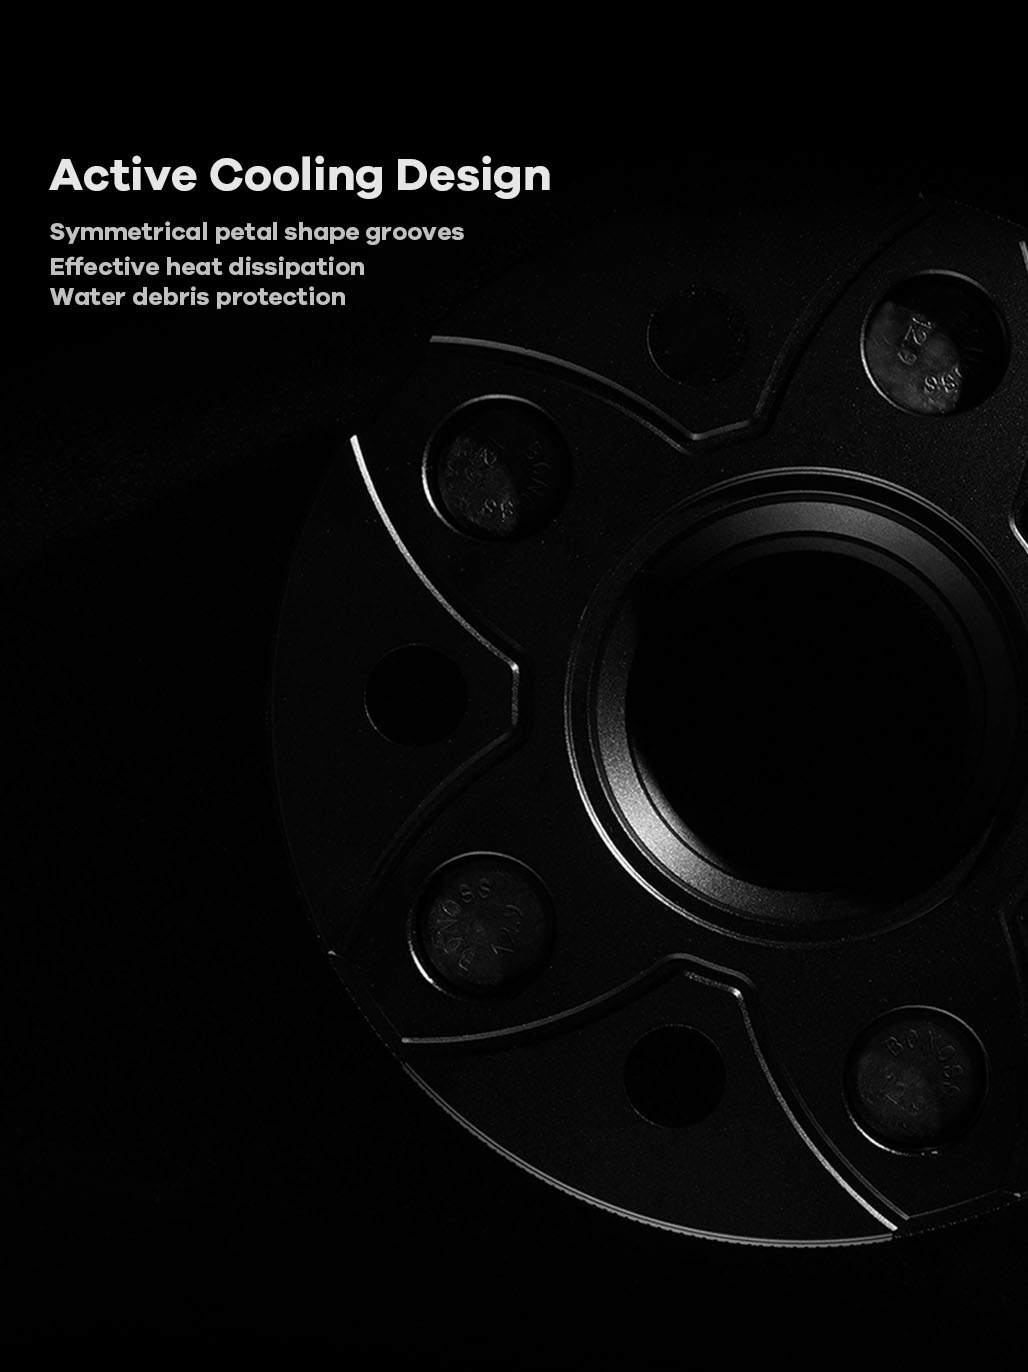 BONOSS-forged-active-cooling-wheel-spacer-5x120-64.1-M14X1.5-by-lulu-3